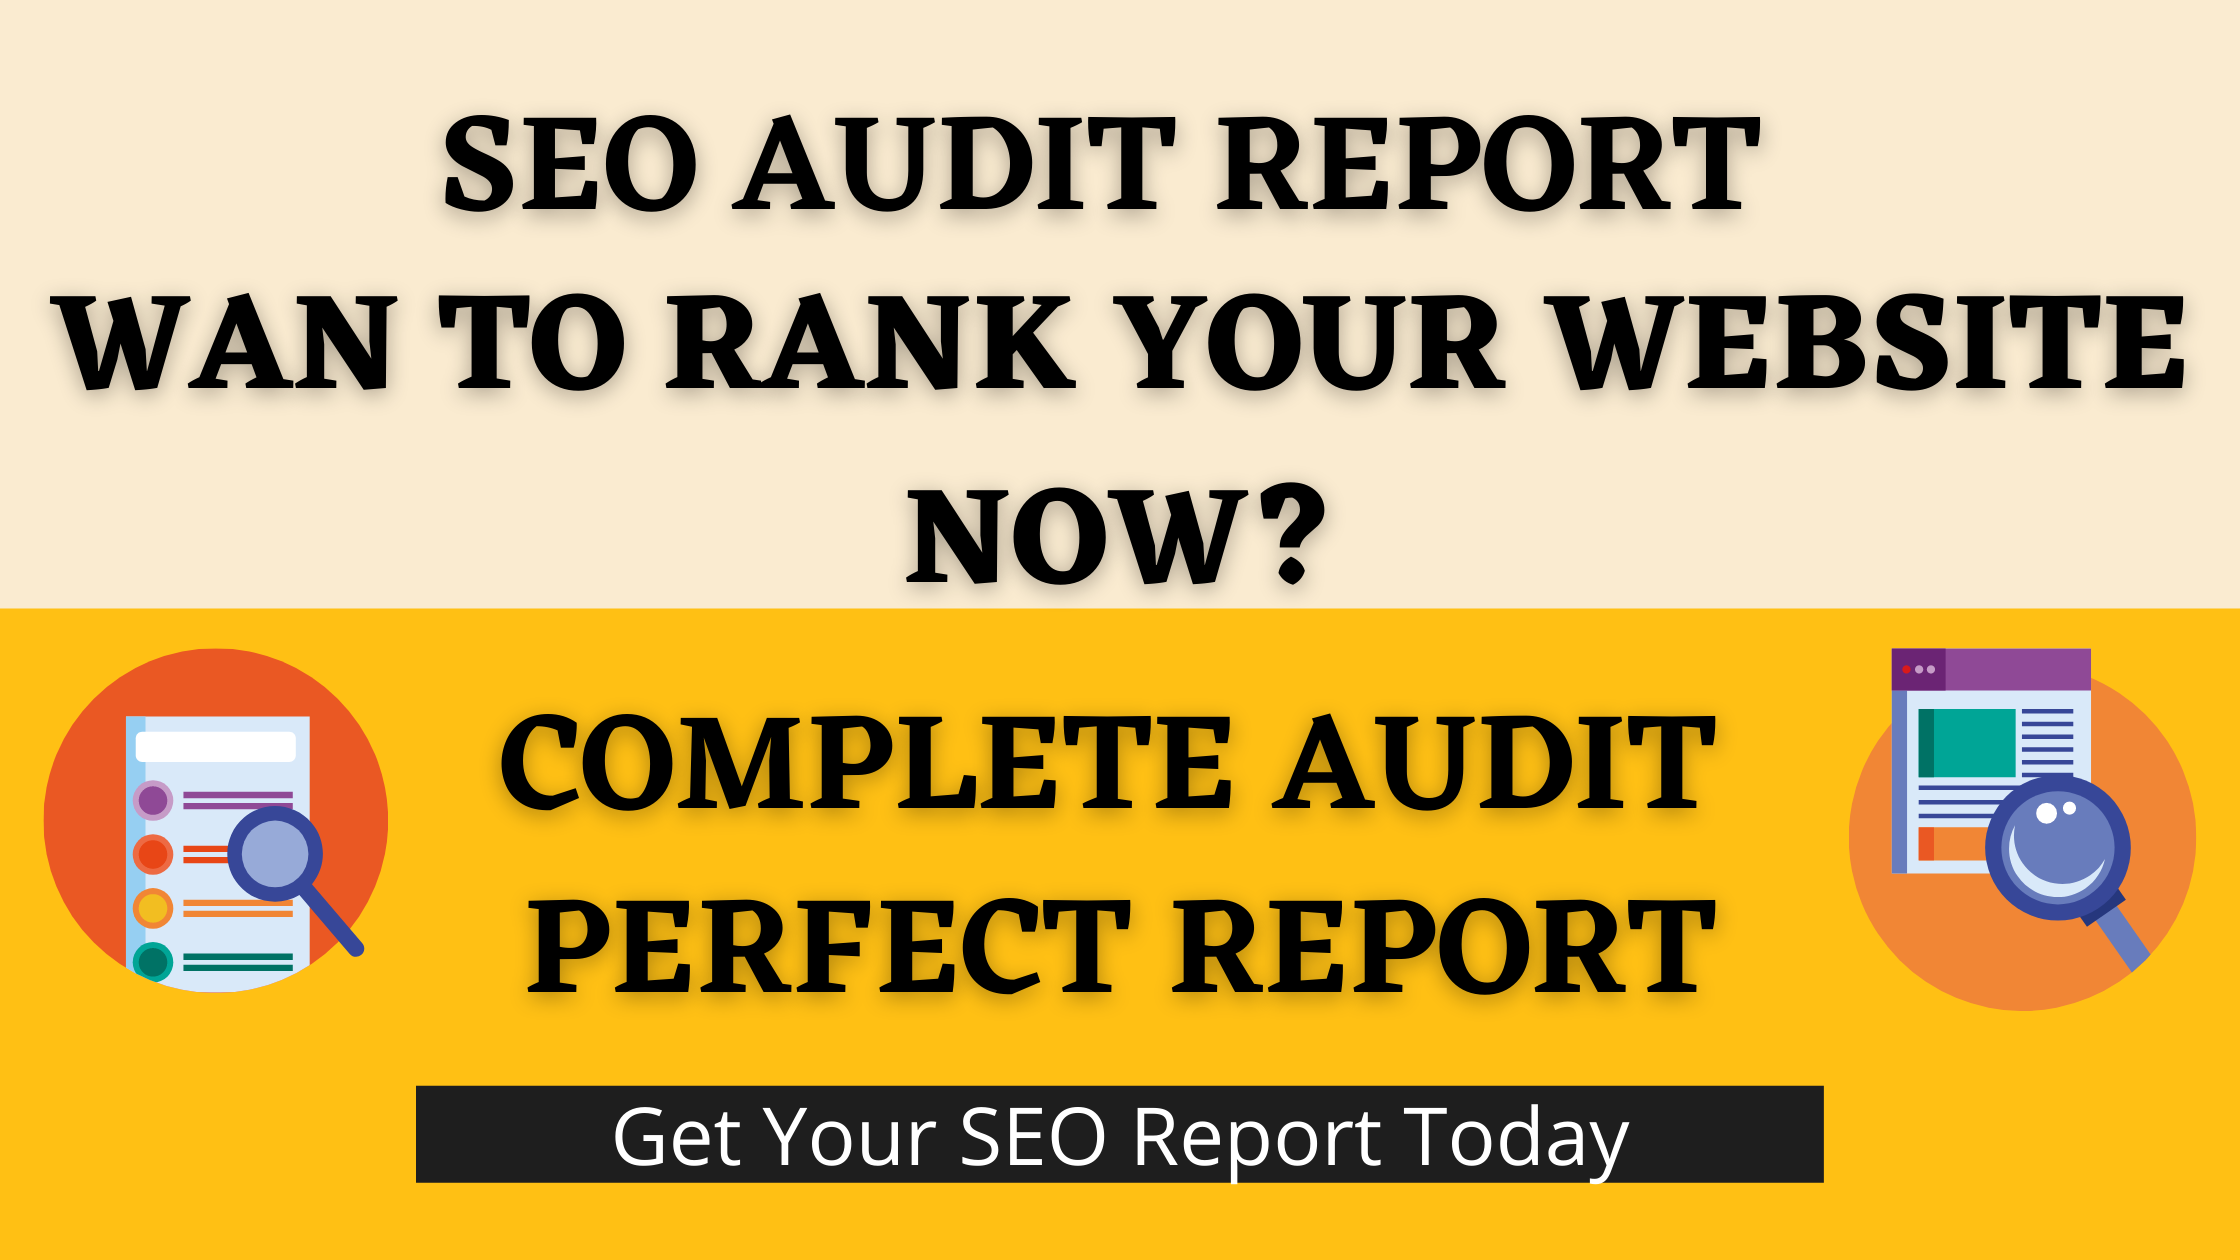 I will provide you perfect SEO Audit Report For Your Website